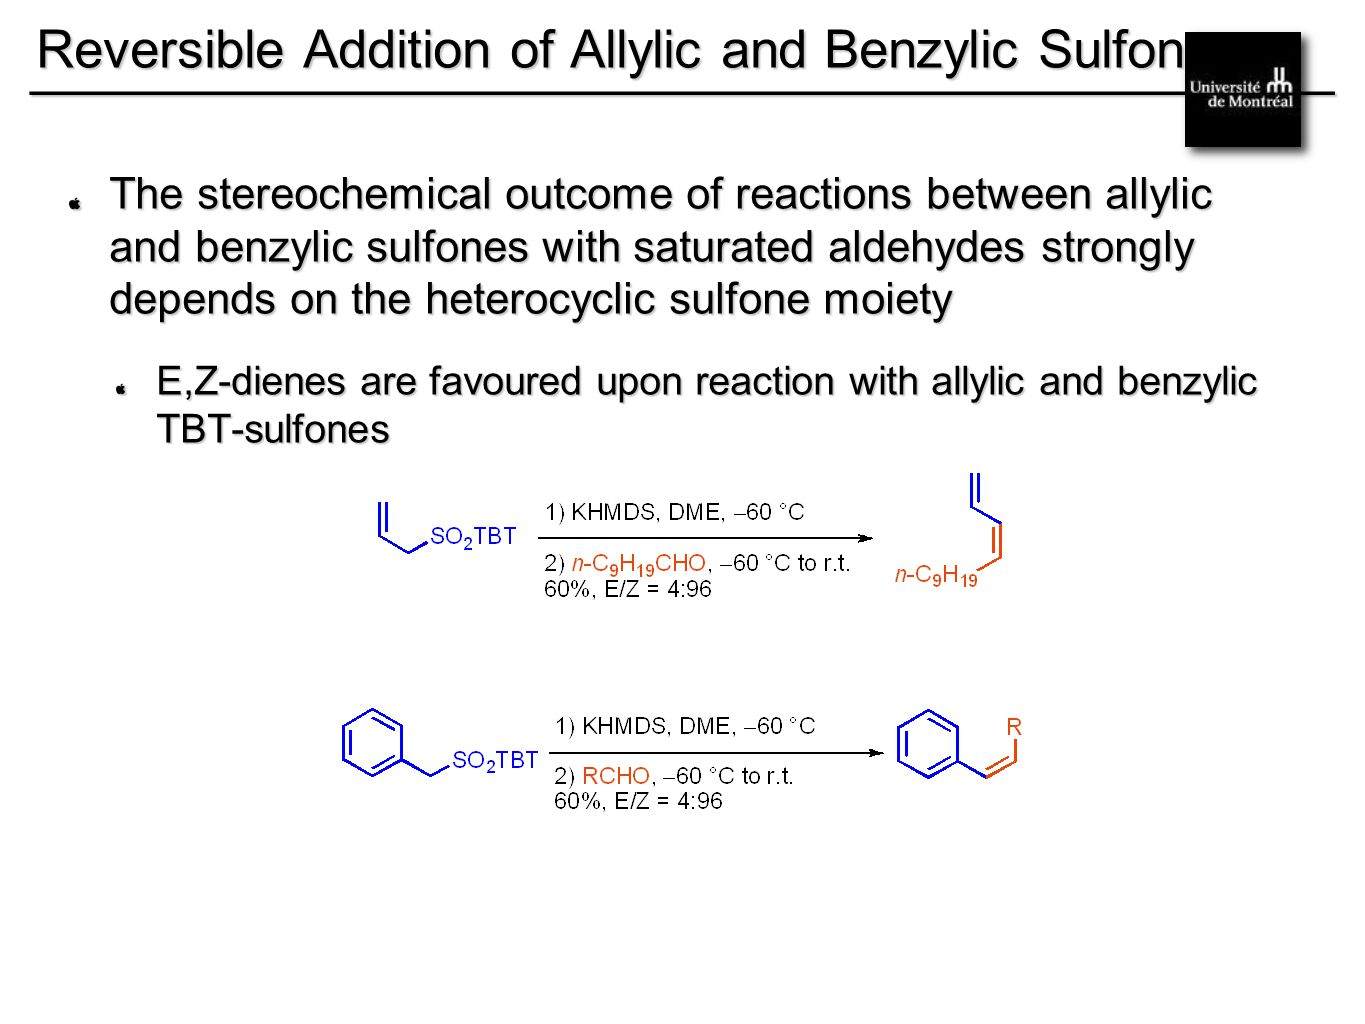 __________________________________________ Reversible Addition of Allylic and Benzylic Sulfones The stereochemical outcome of reactions between allylic and benzylic sulfones with saturated aldehydes strongly depends on the heterocyclic sulfone moiety E,Z-dienes are favoured upon reaction with allylic and benzylic TBT-sulfones